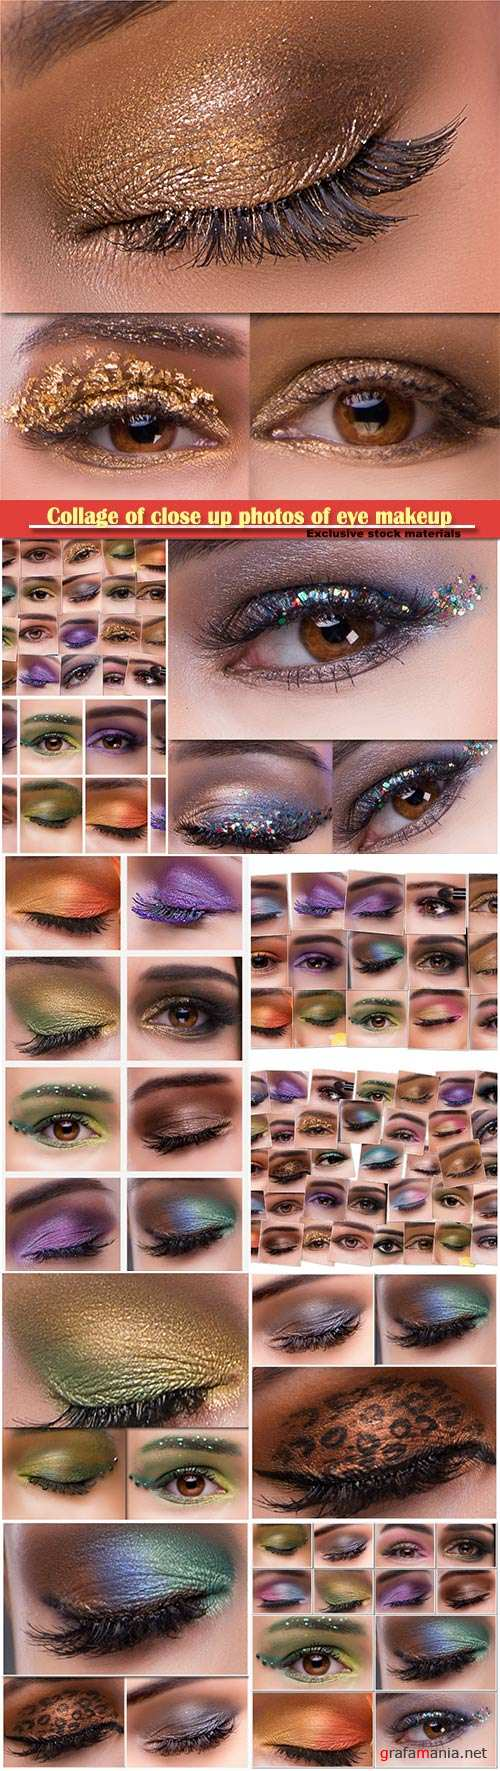 Collage of close up photos of eye makeup